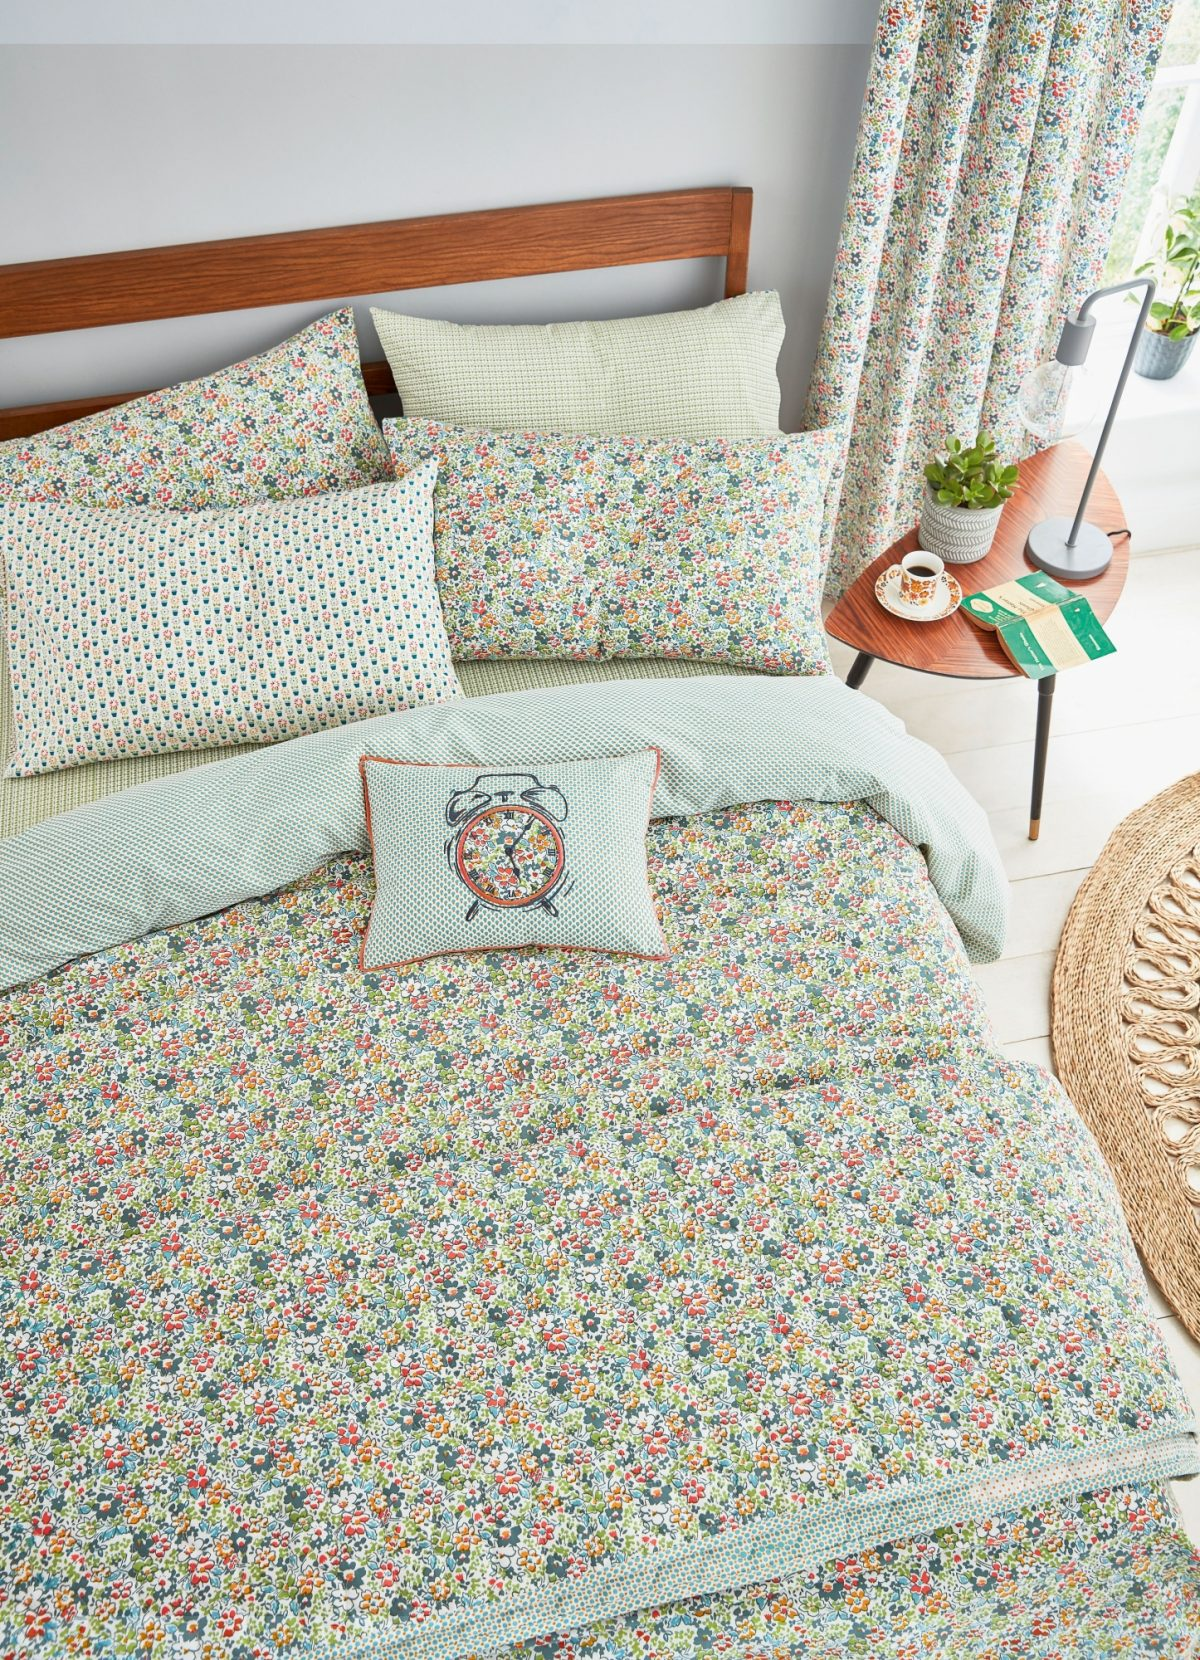 Hs Dottie Main Bed No Accessories Hr